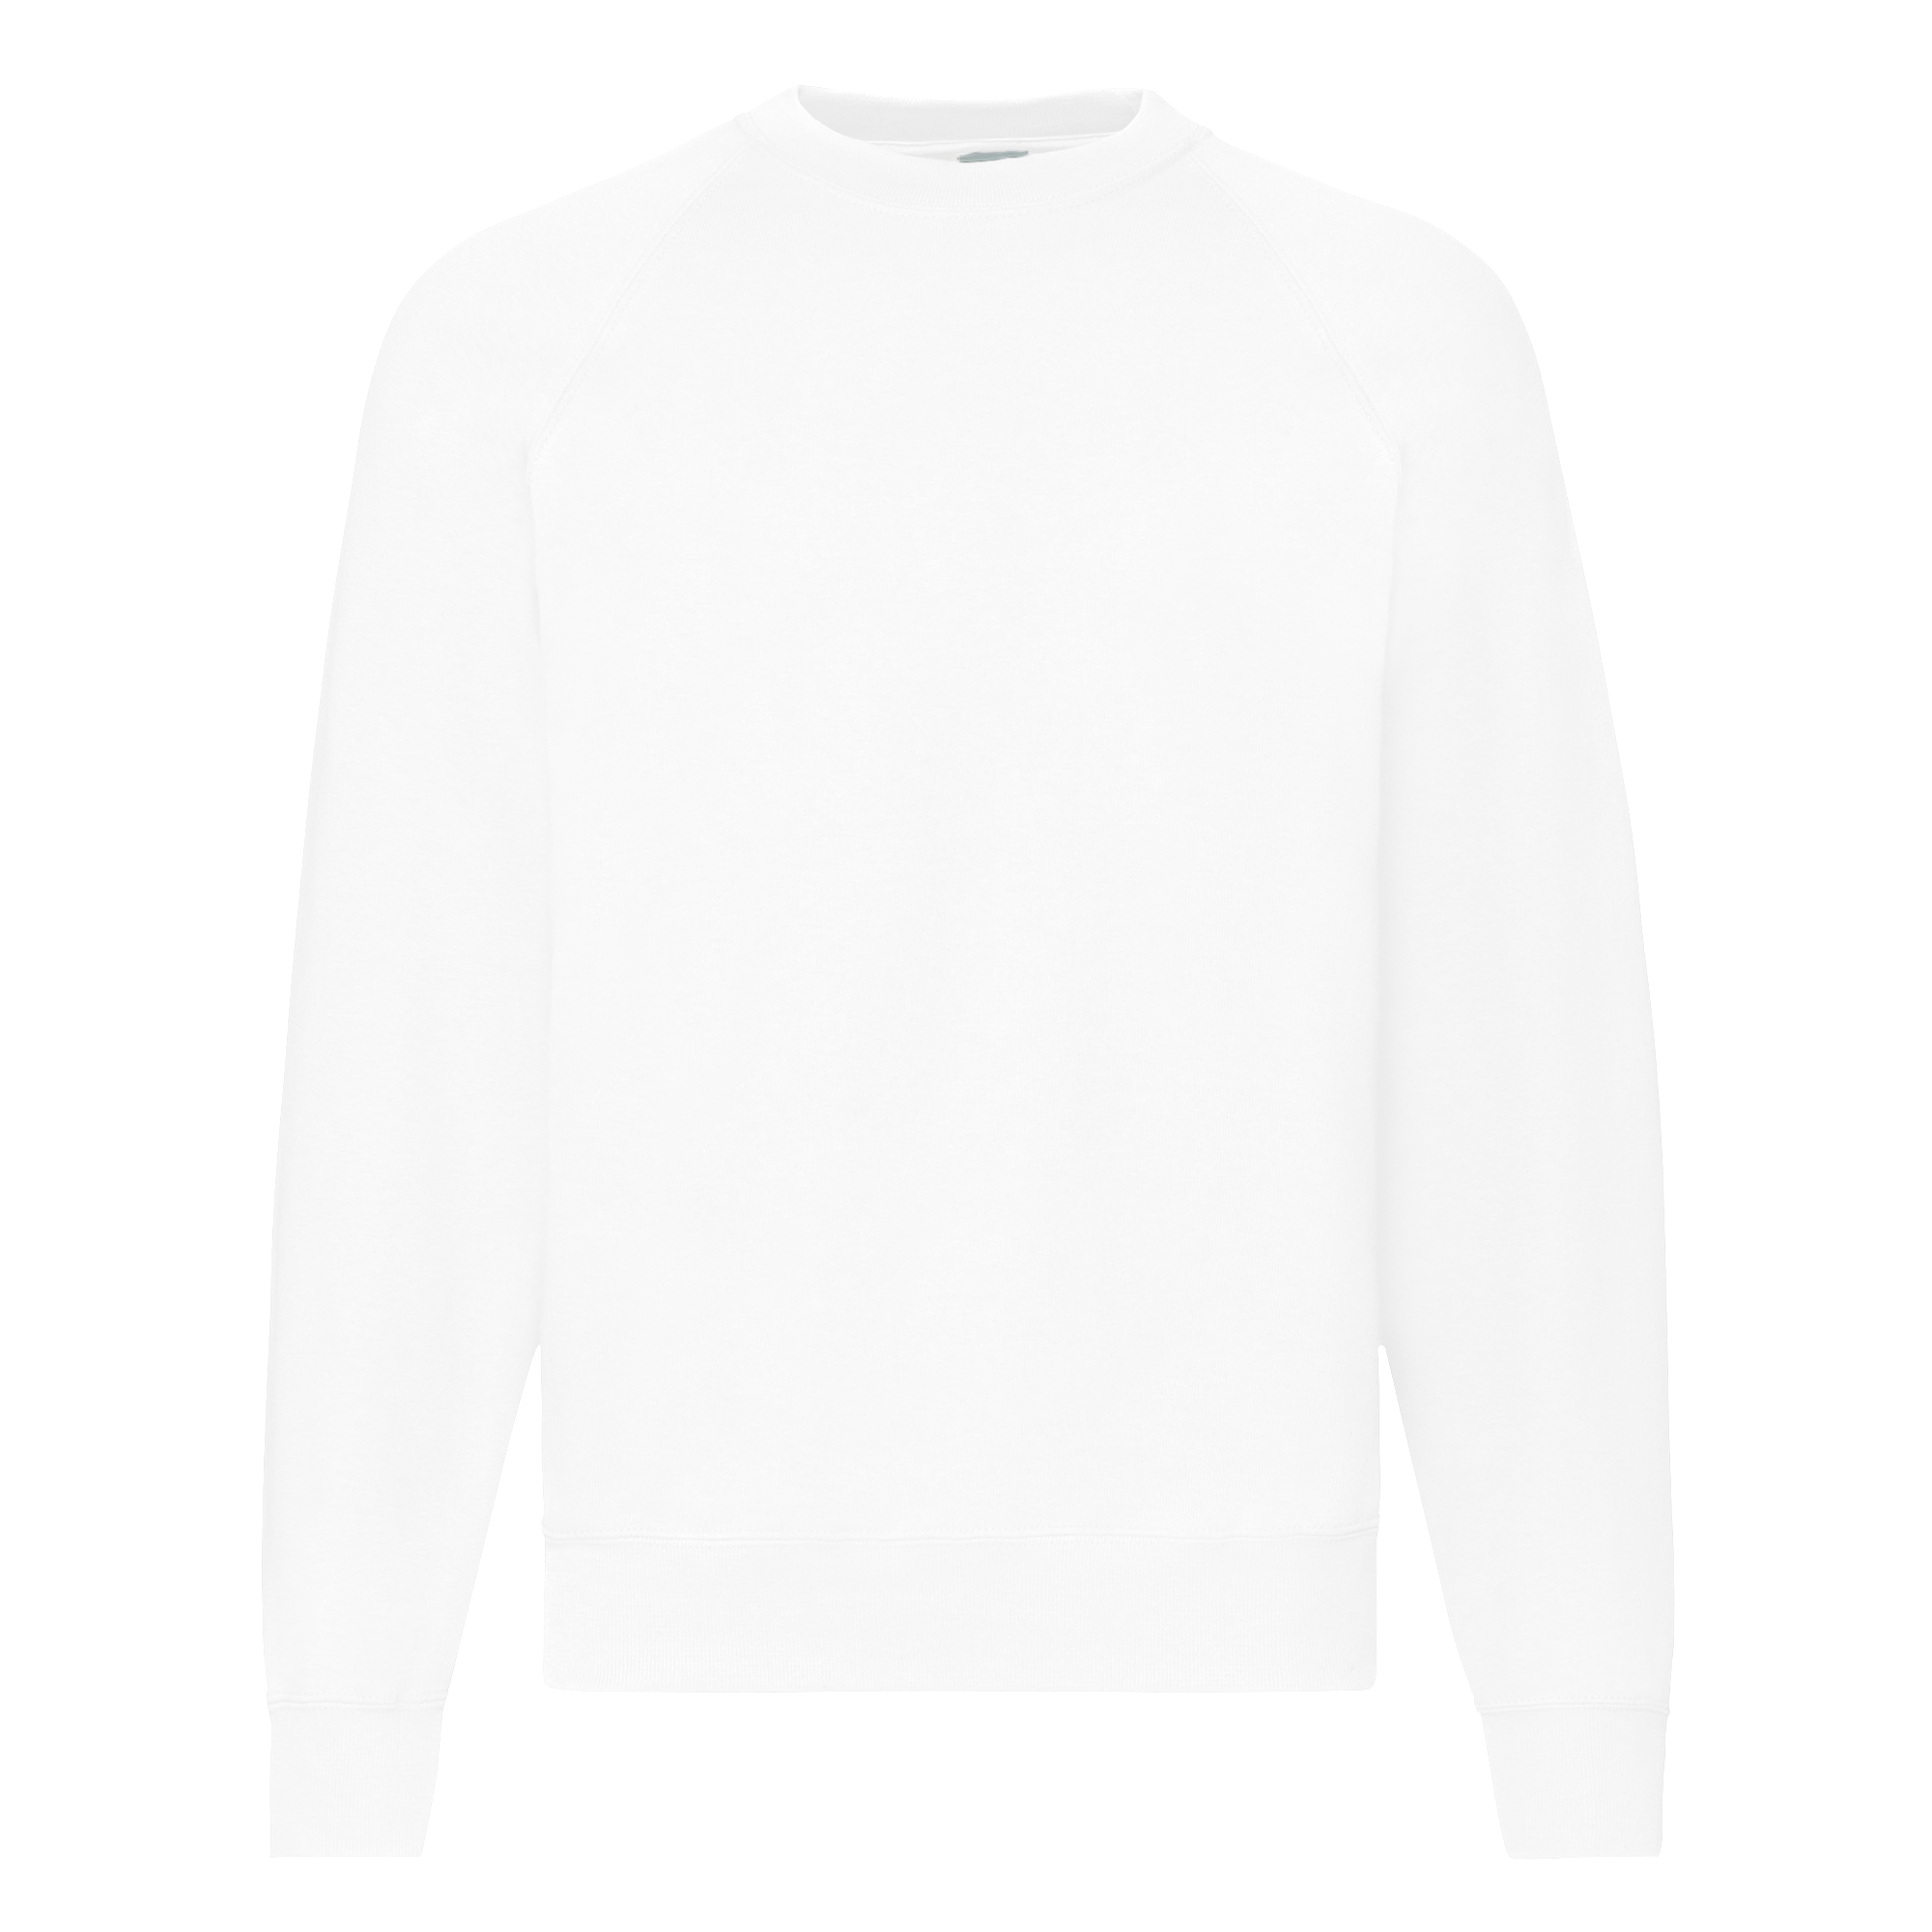 fruit of the loom mens raglan sleeve belcoro sweatshirt s xxl ebay. Black Bedroom Furniture Sets. Home Design Ideas